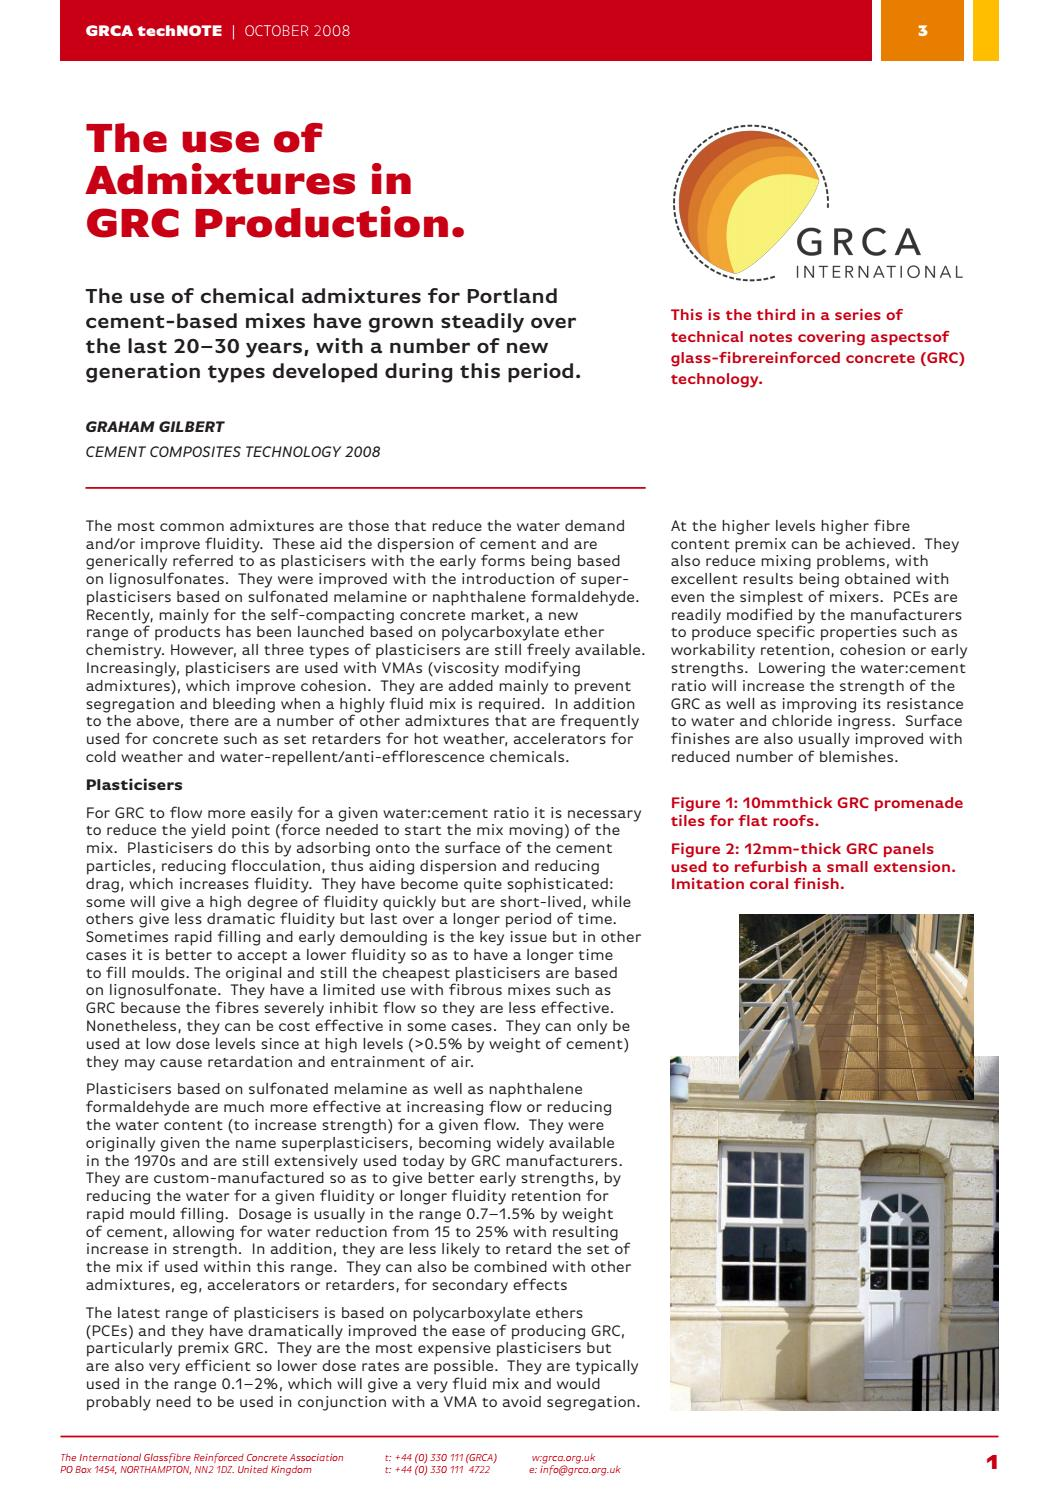 GRCA techNOTE 03 Use of Admixtures in GRC Production by